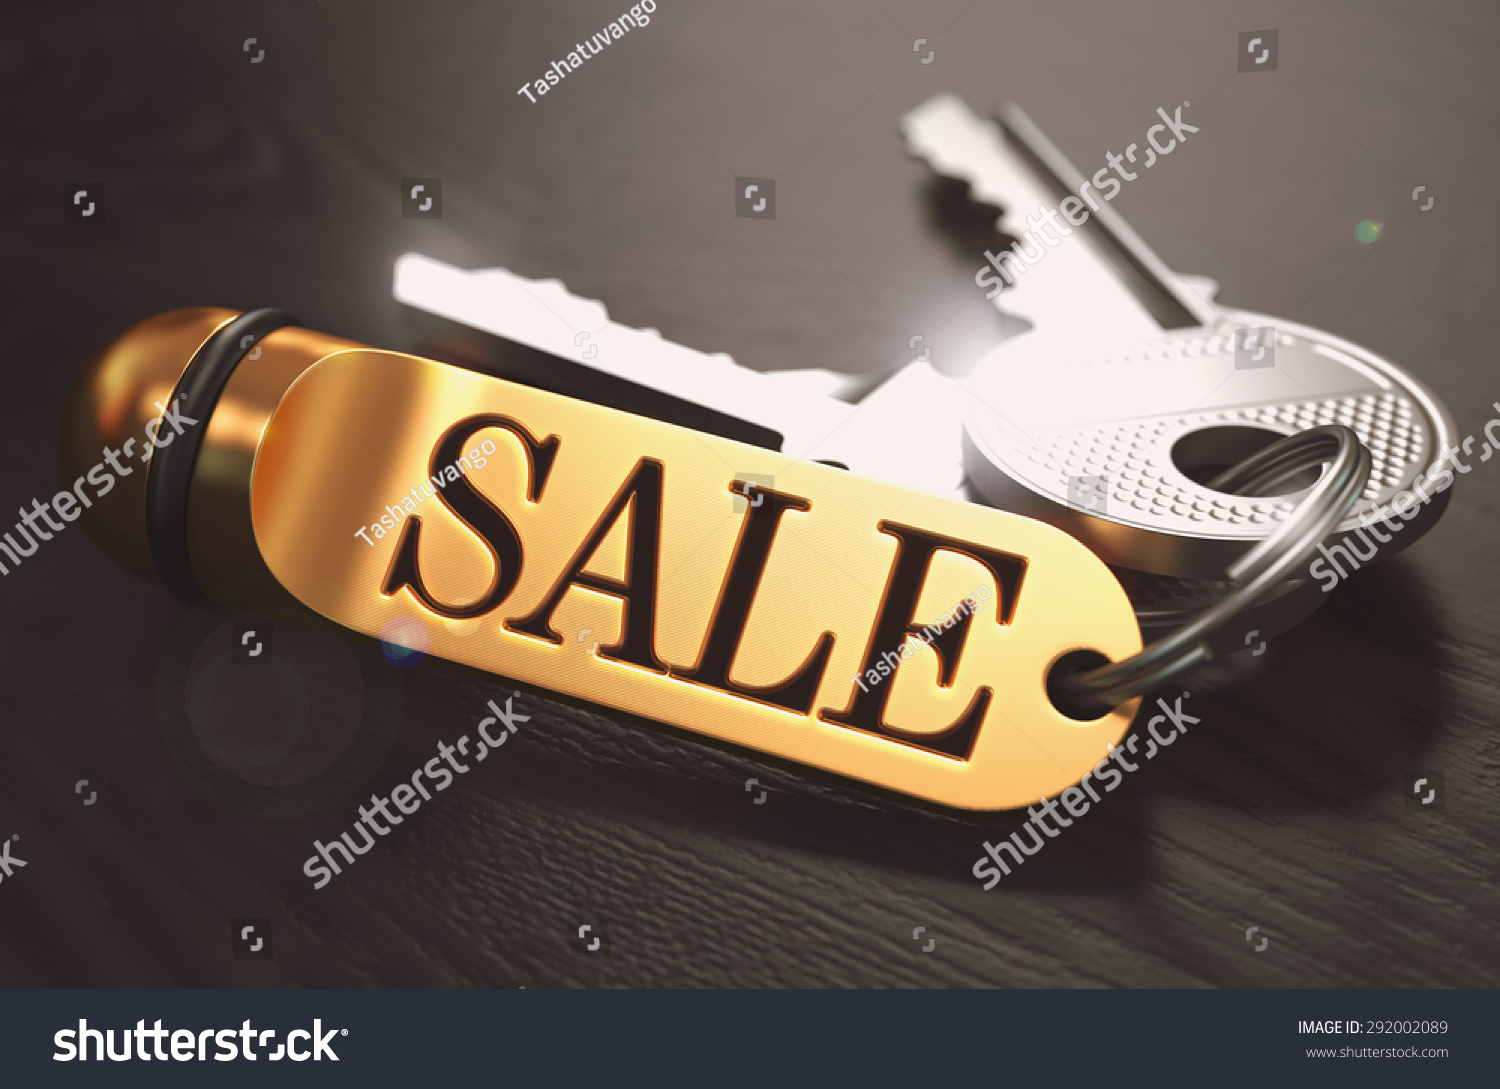 With golden key 3d rendering plan concept with golden key 3d rendering - Sale Bunch Of Keys With Text On Golden Keychain Black Wooden Background Closeup